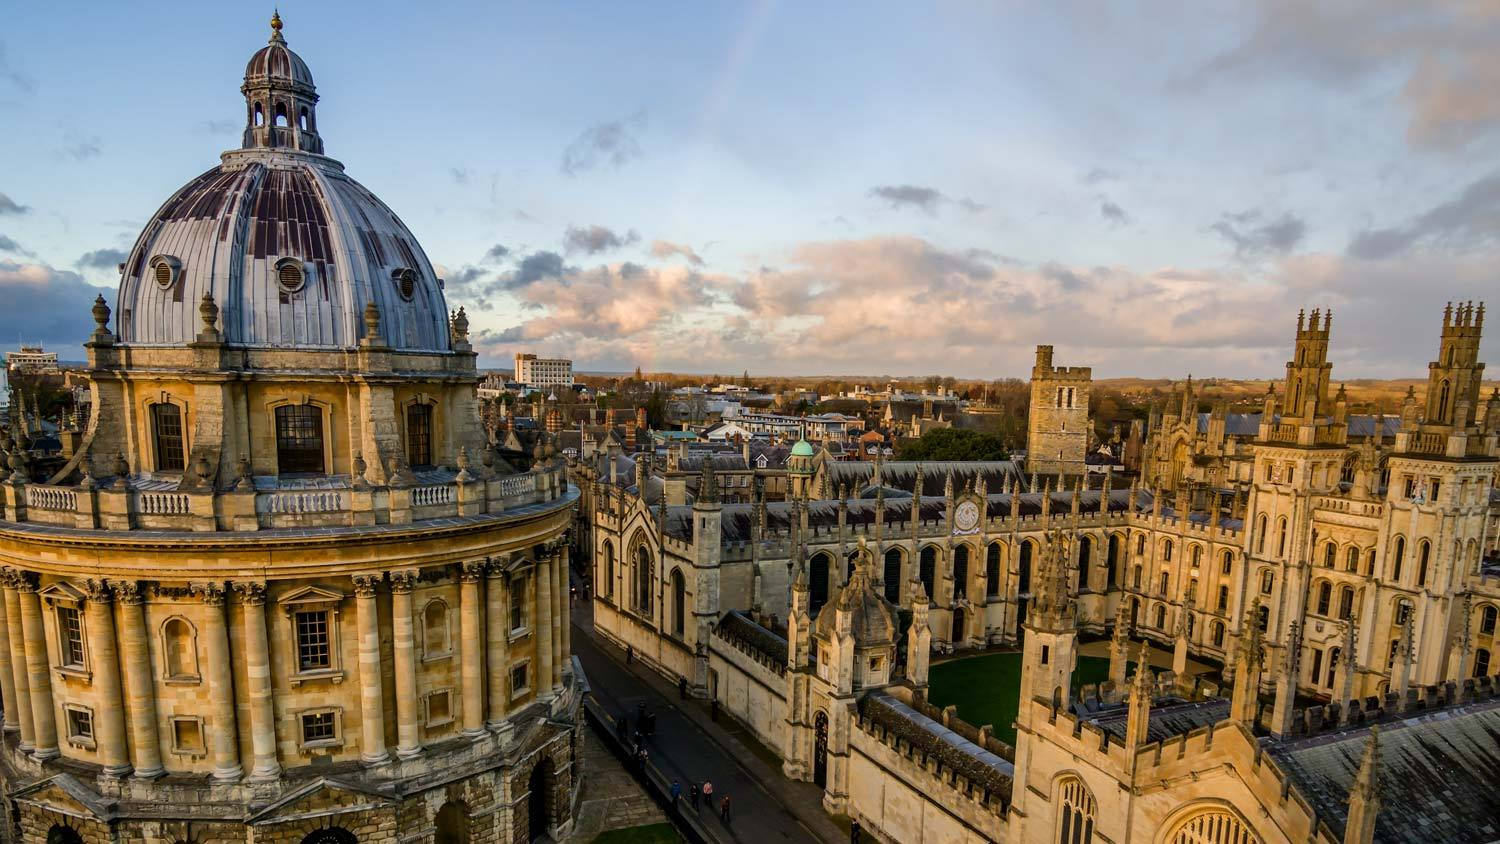 What are the worst things about Oxford University?